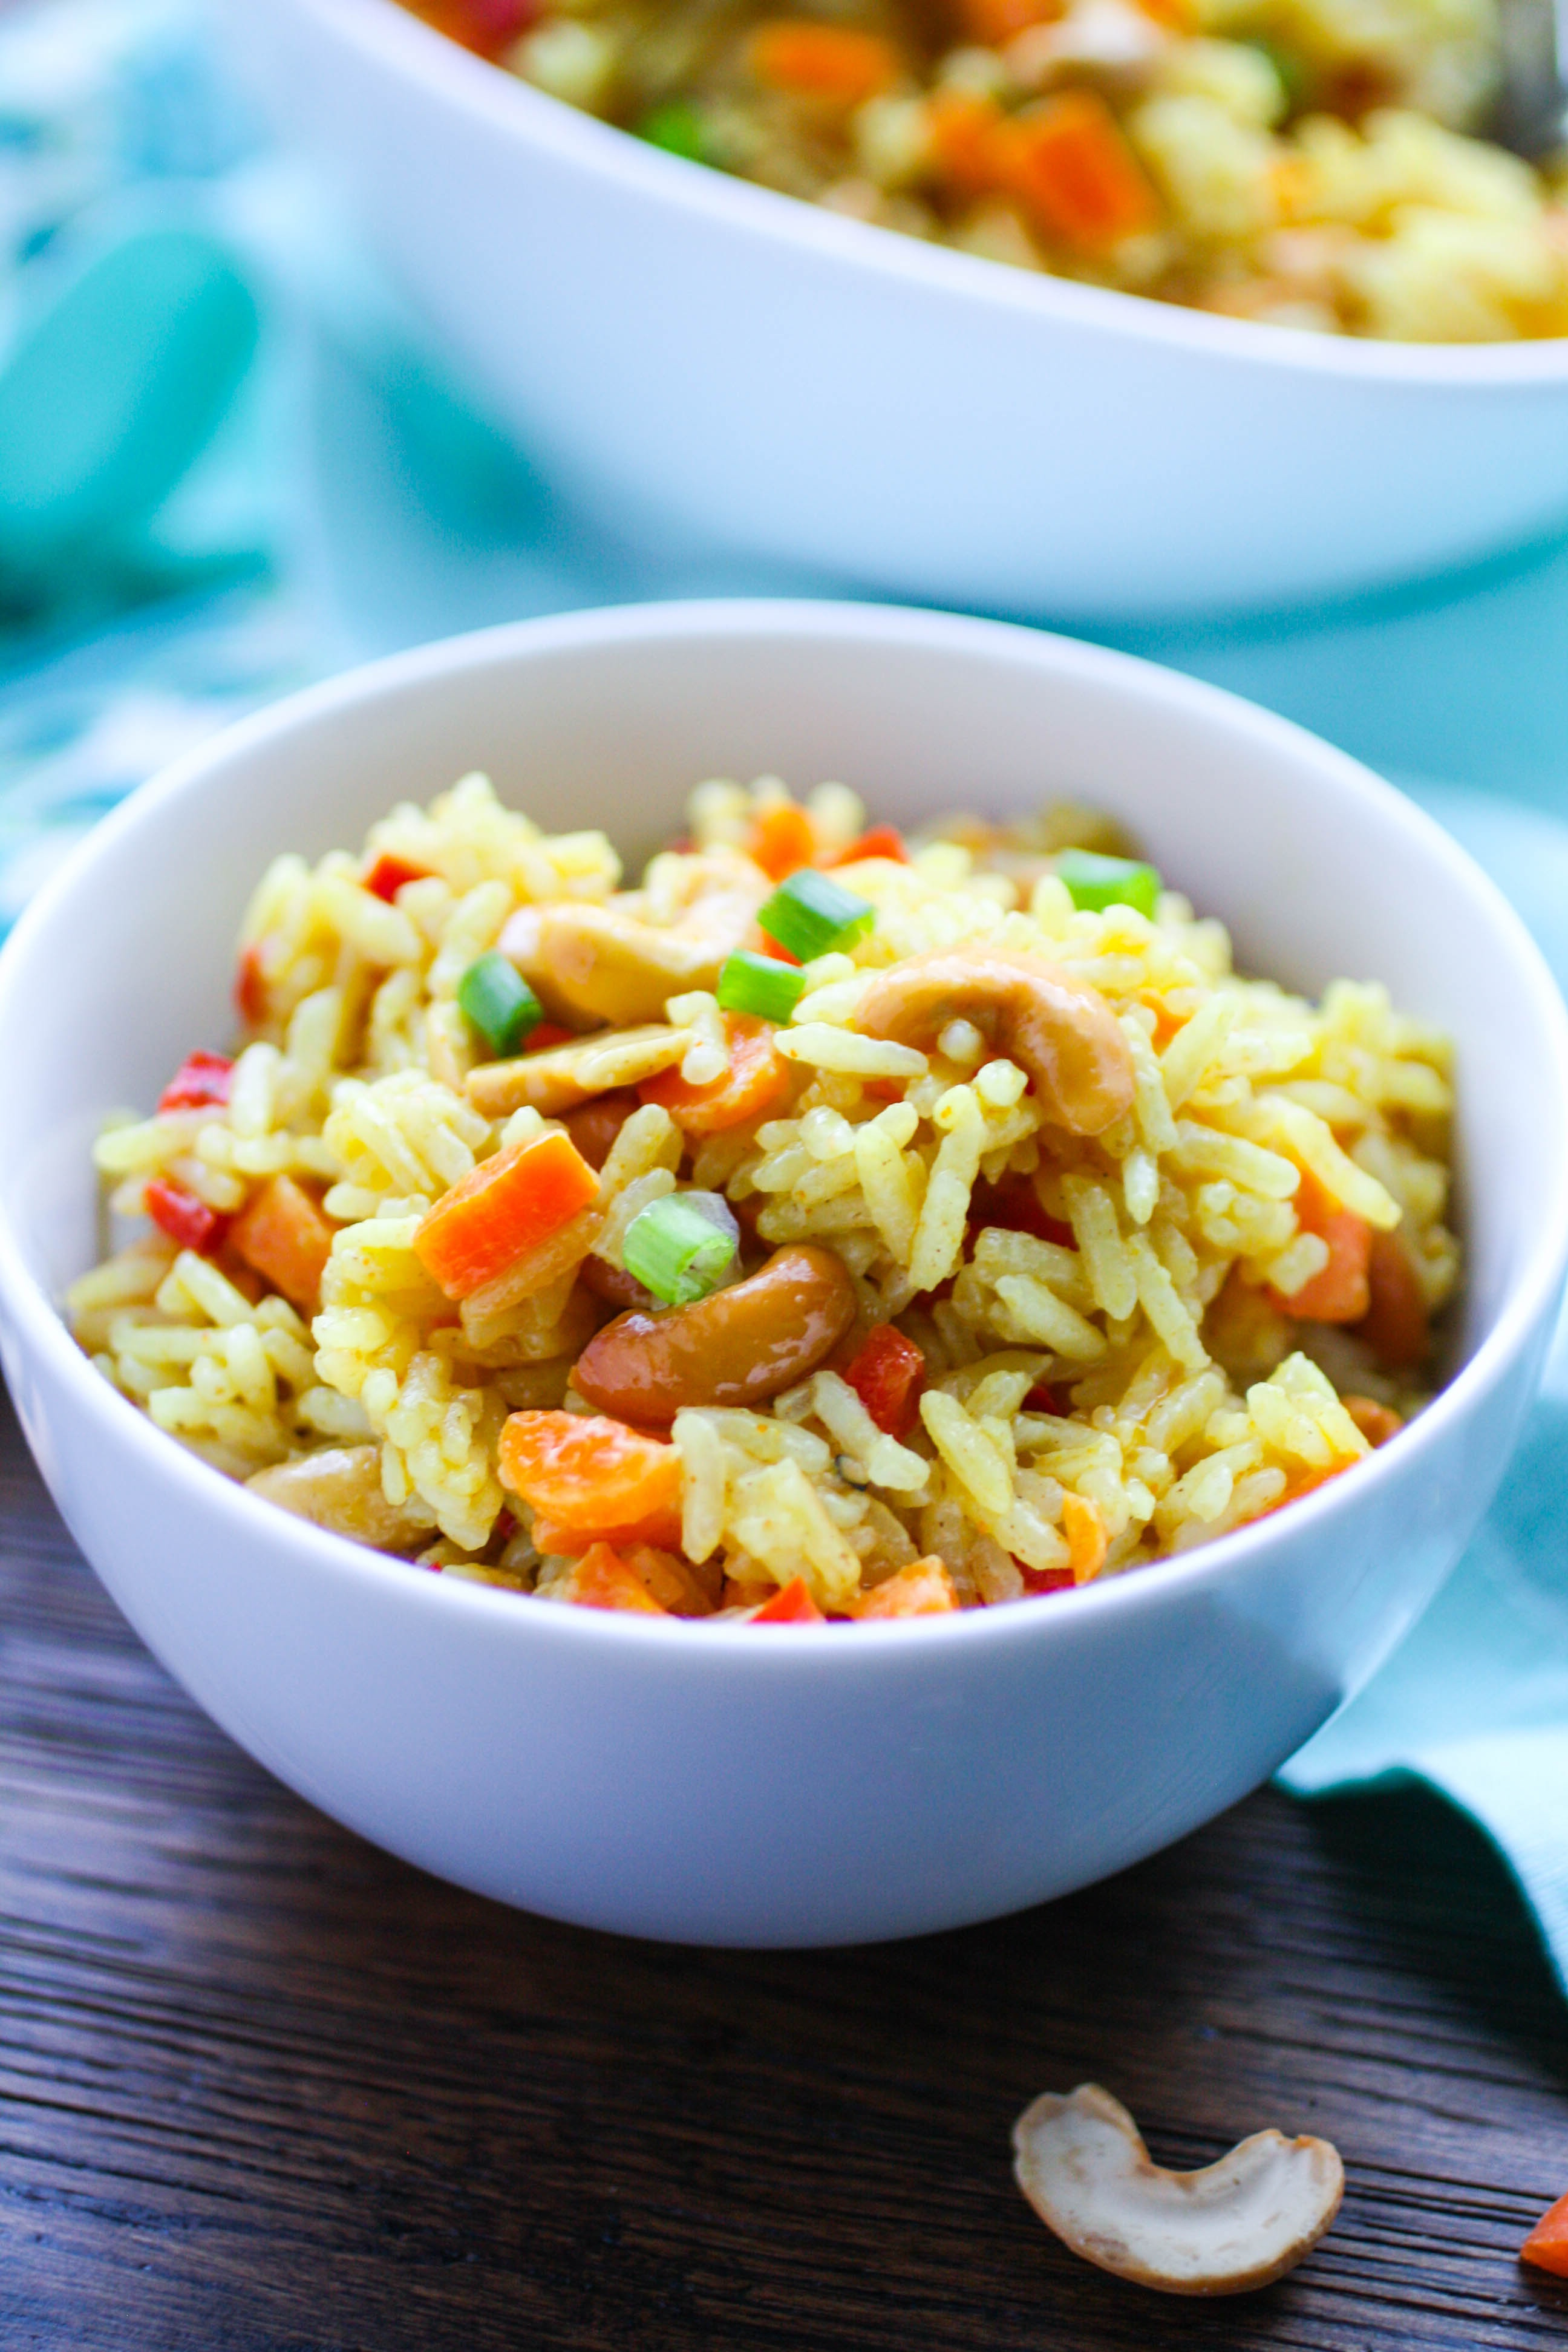 Coconut Carrot and Cashew Rice Pilaf is great as a side dish or as a main dish. Serve it on Meatless Monday, or any day of the week!